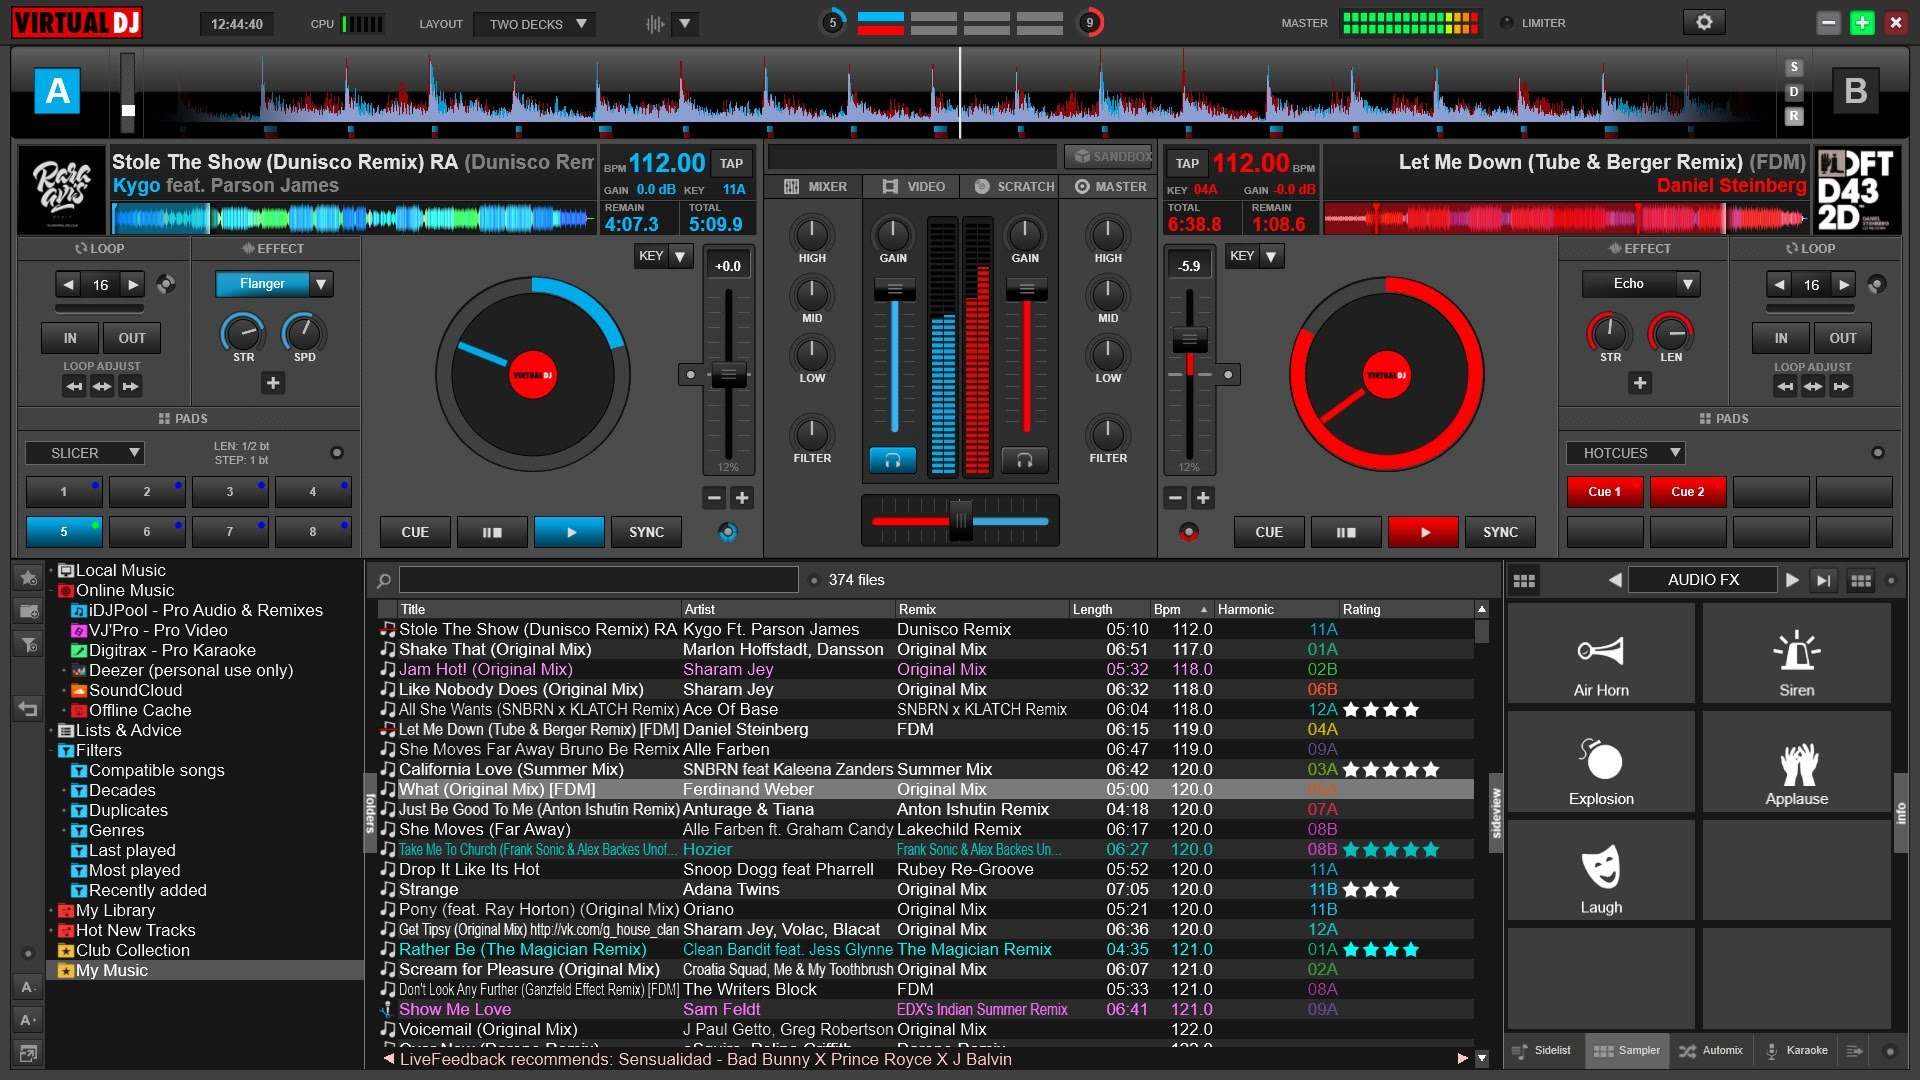 Download VirtualDJ Pro Infinity Full